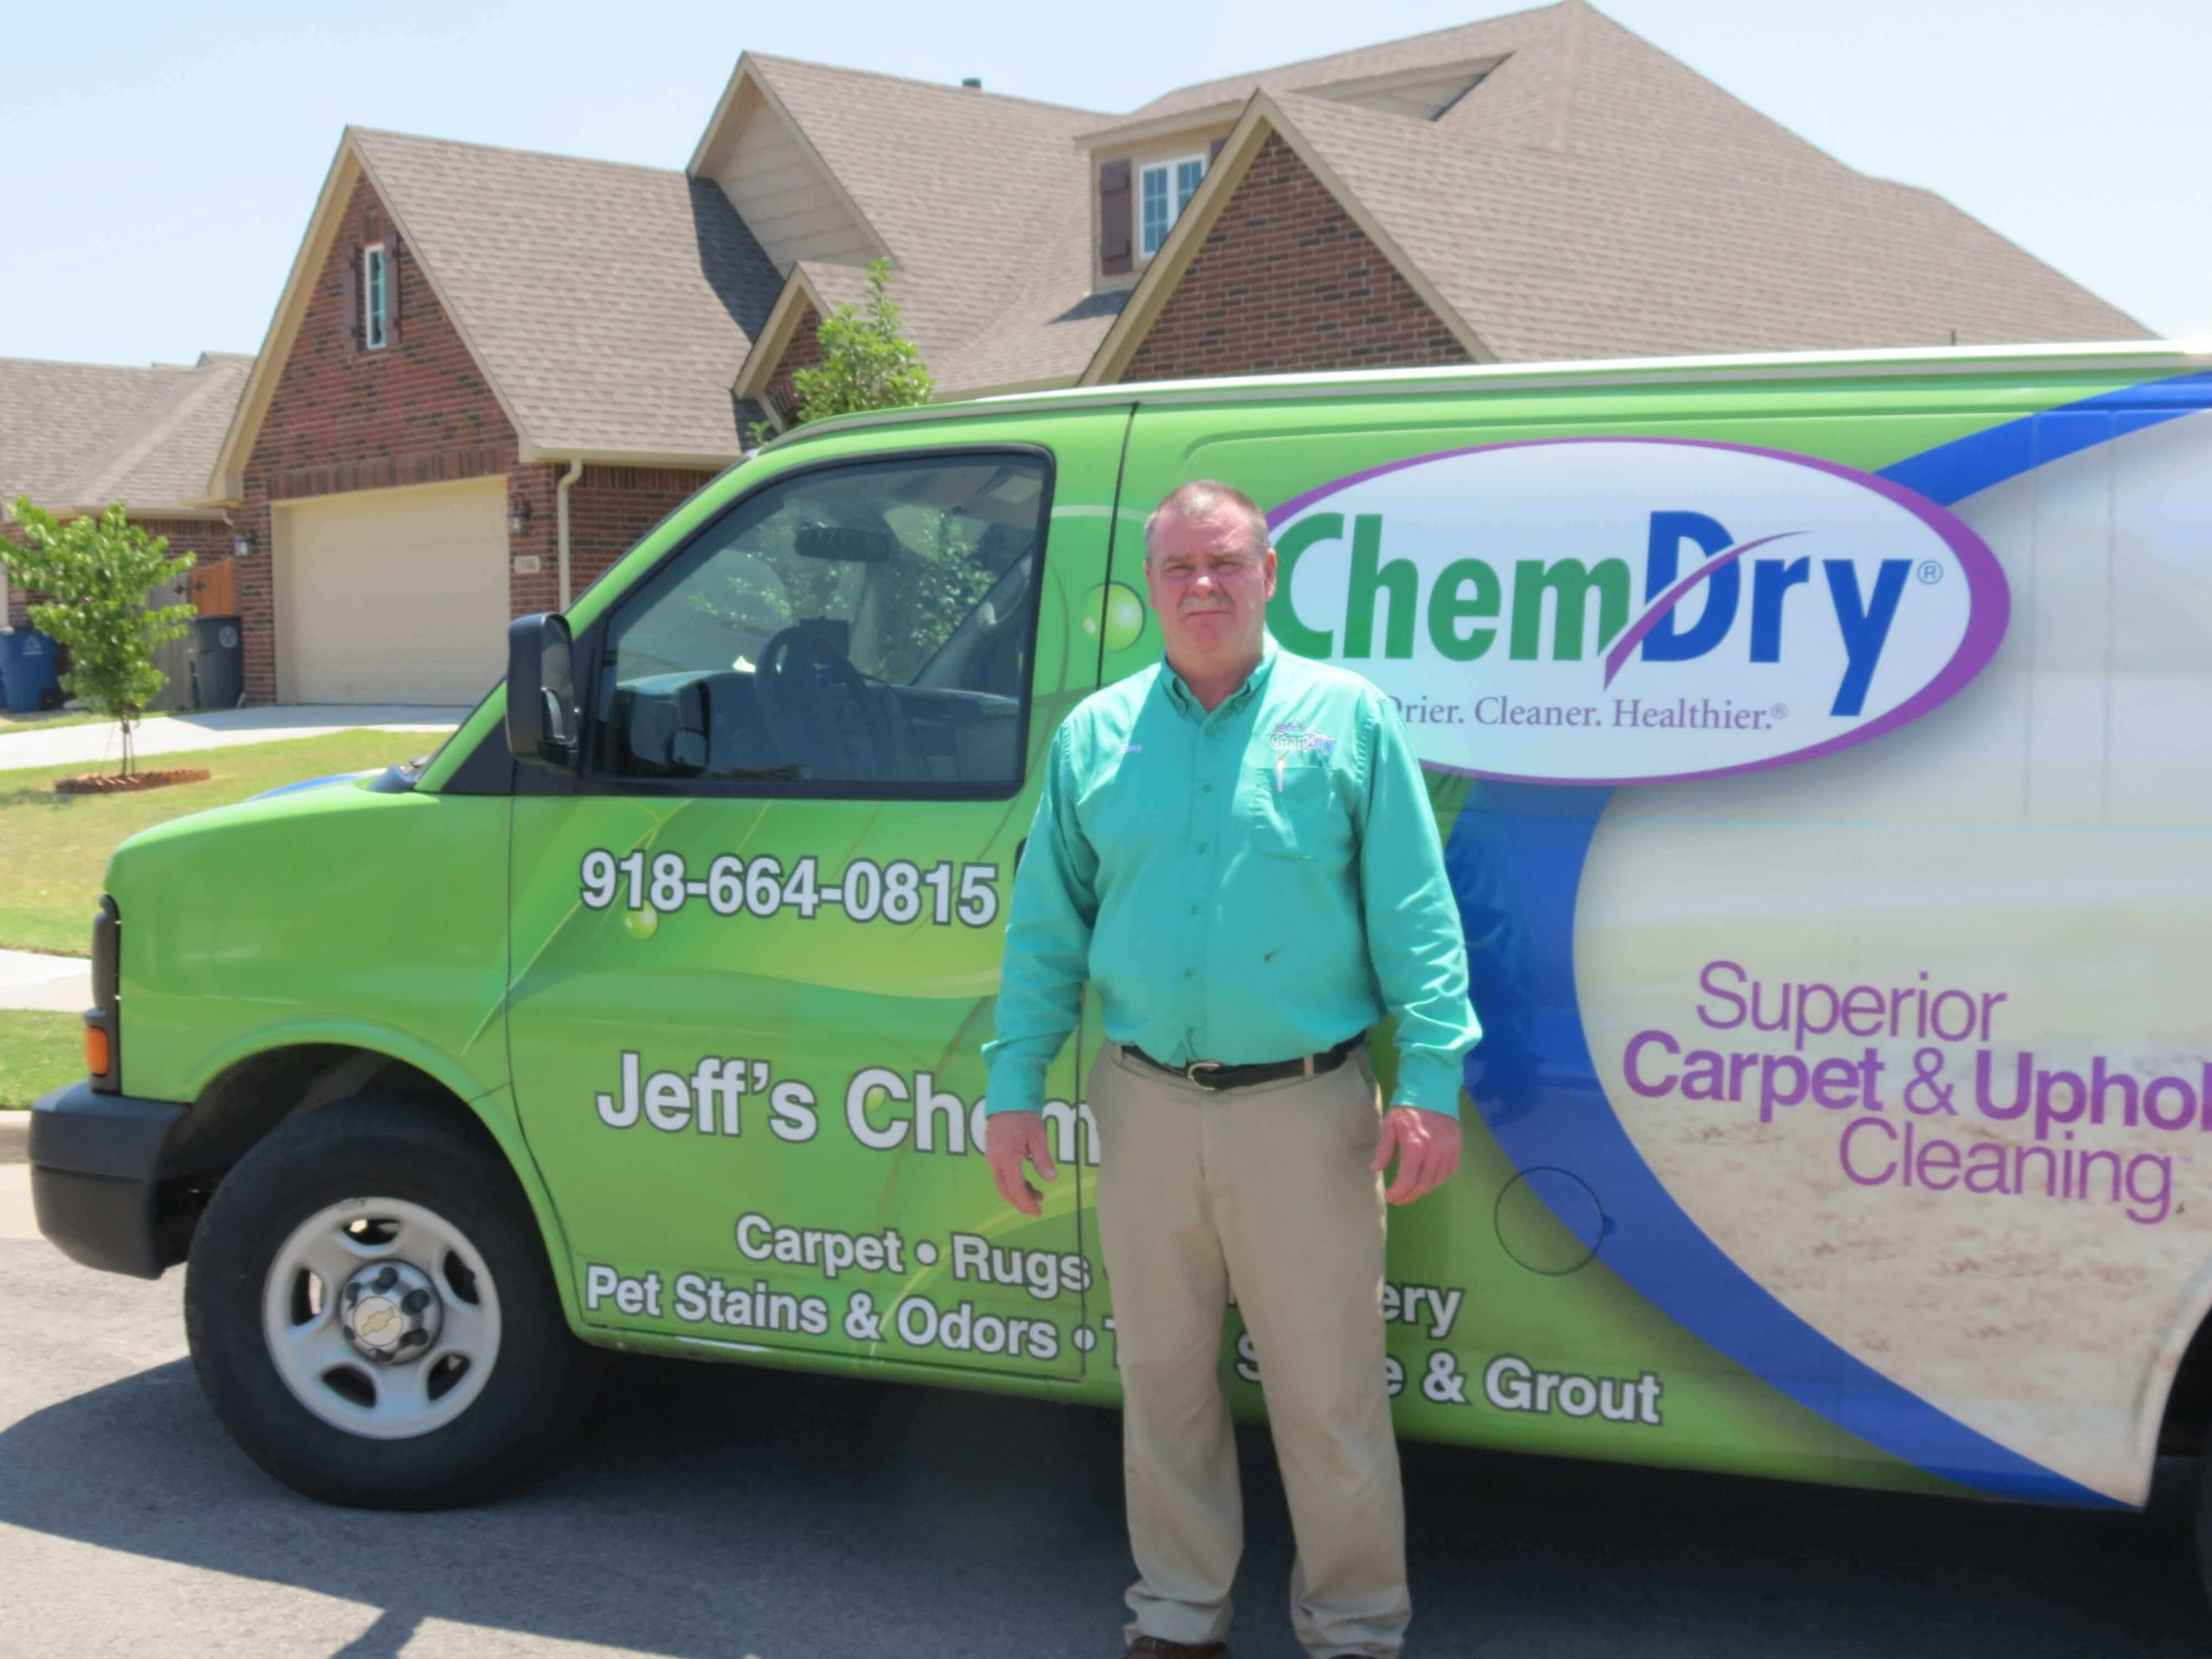 Gary Donaldson-manager at Jeff's Chem-Dry in Tulsa